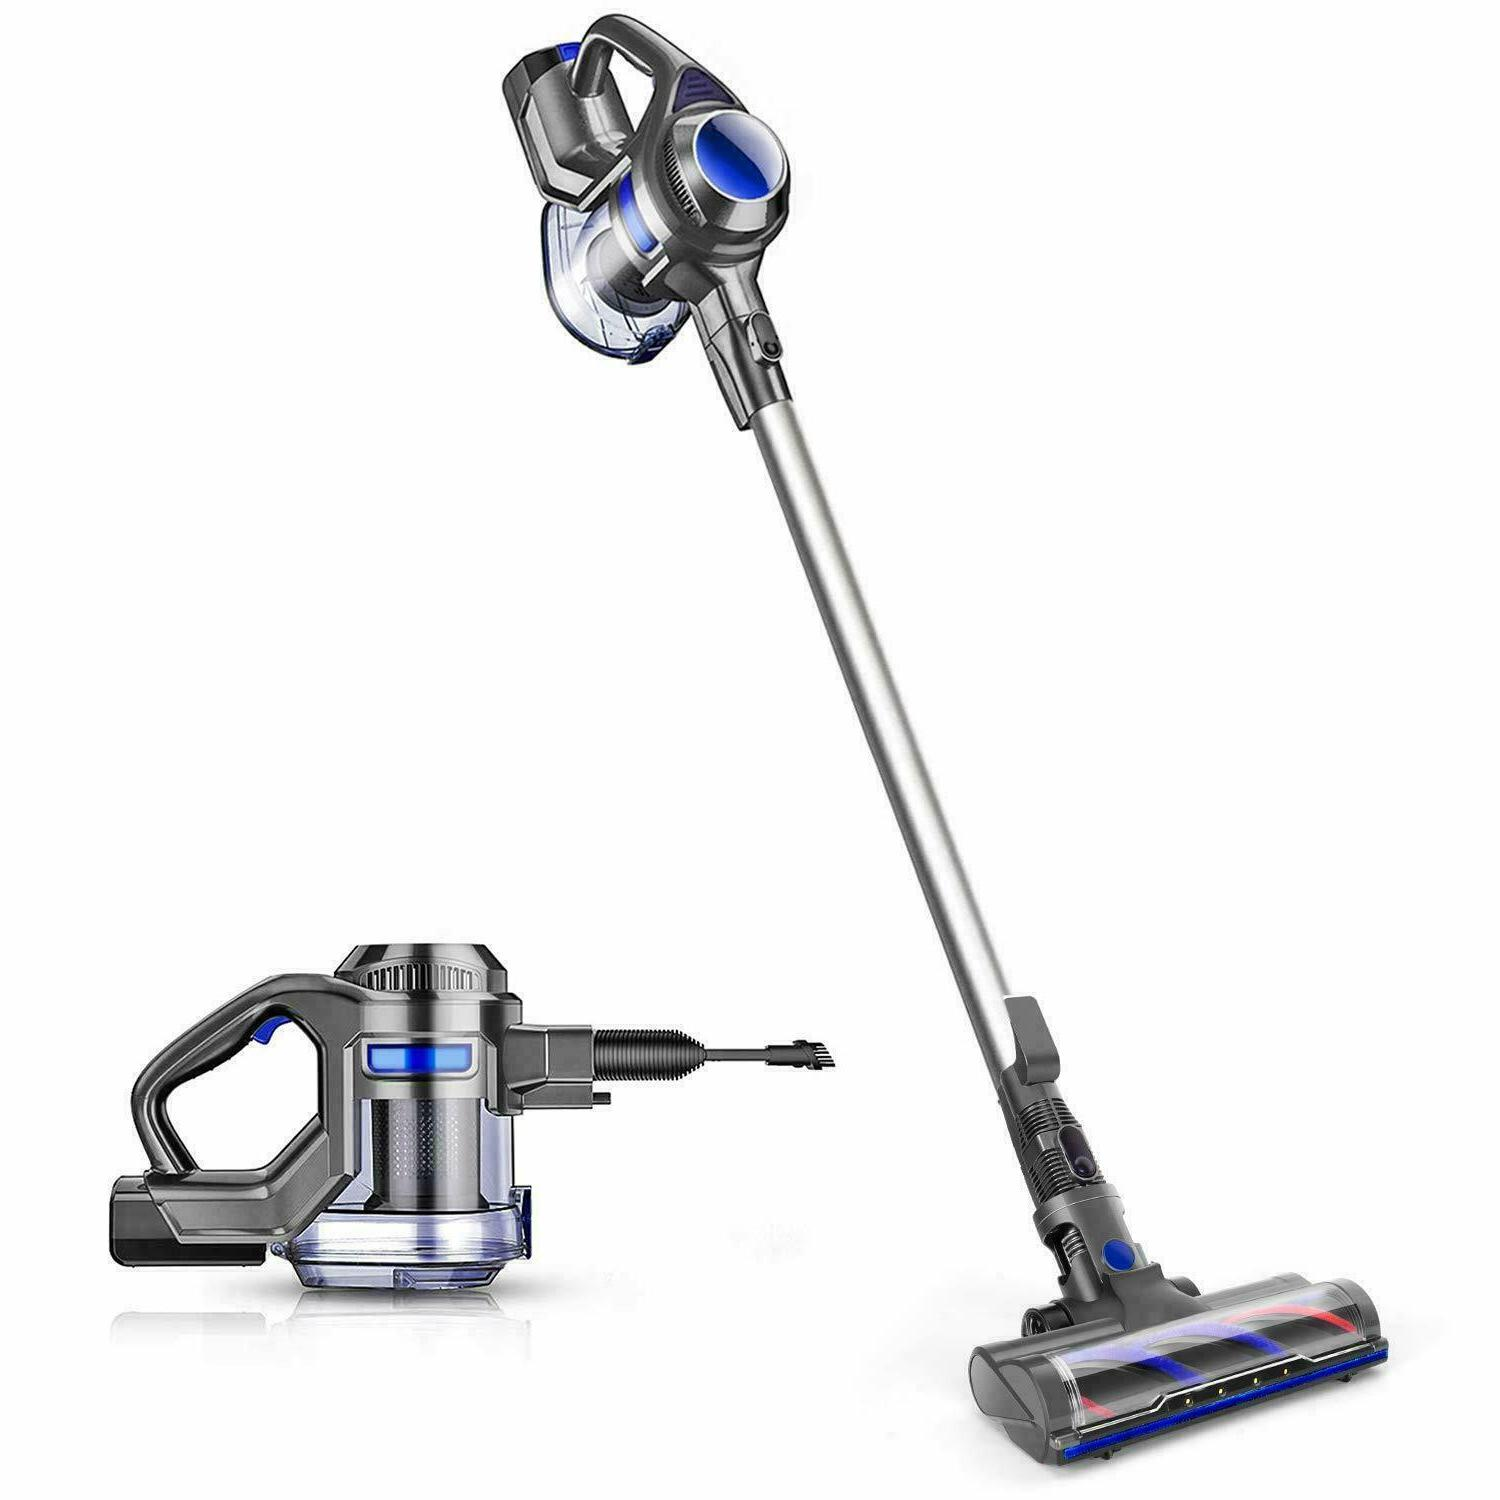 cordless vacuum 10kpa powerful suction 4 in